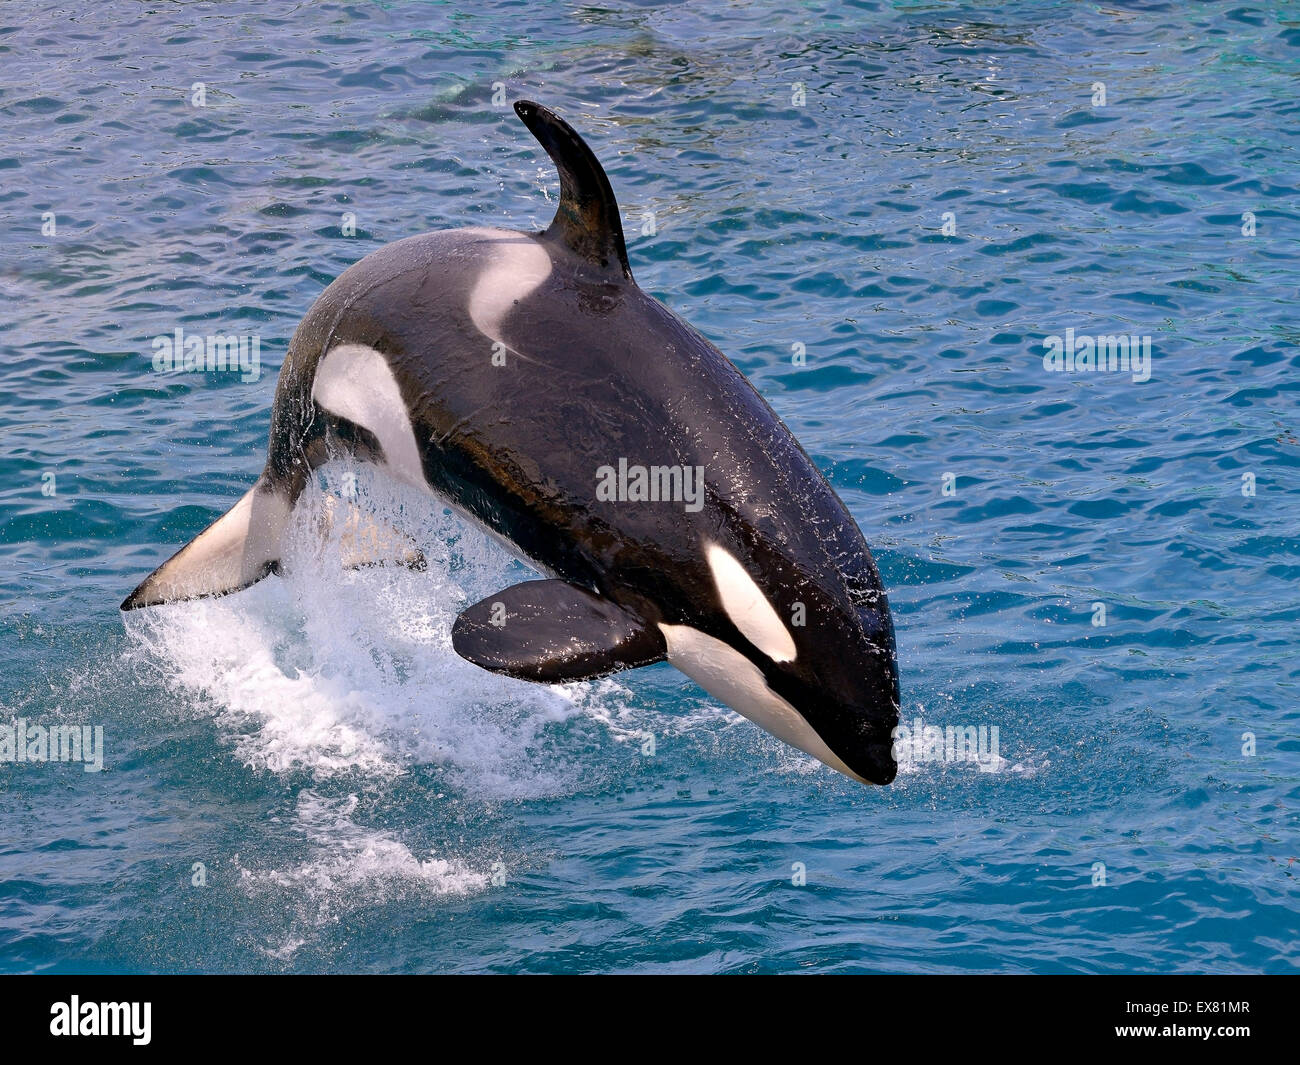 Killer whale jumping out of water - Stock Image